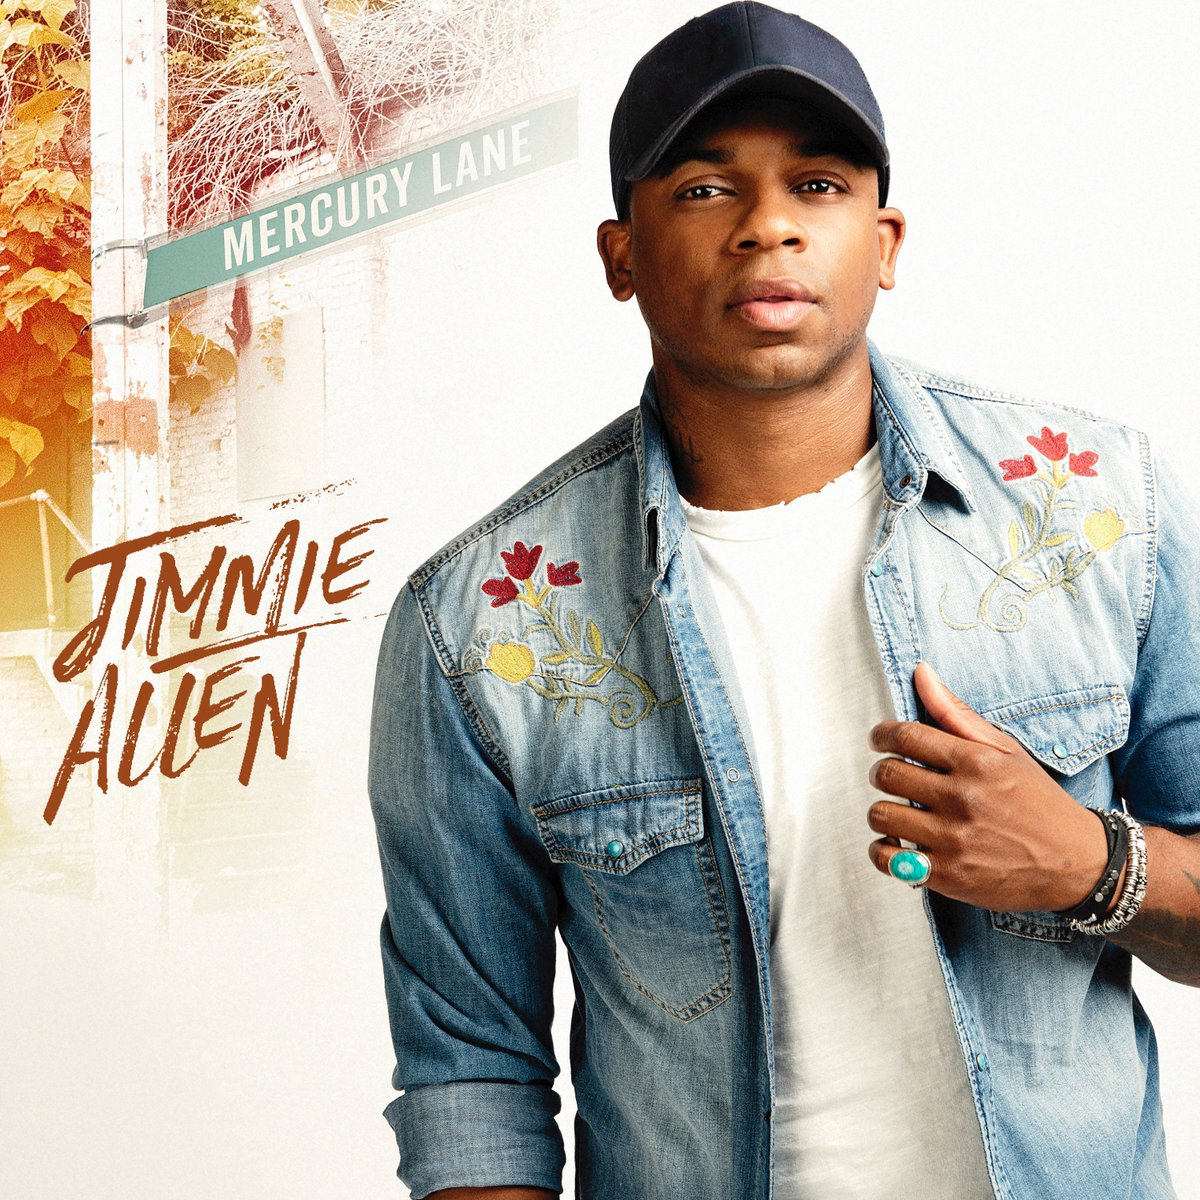 My debut album #MercuryLane is now available!!!! So thankful for my entire team that helped me tell my story. From the writers to my producers to the musicians. This is a dream come true. 🤙🏽⚡️ You can get it here: http://jimmieallen.lnk.to/mercurylane